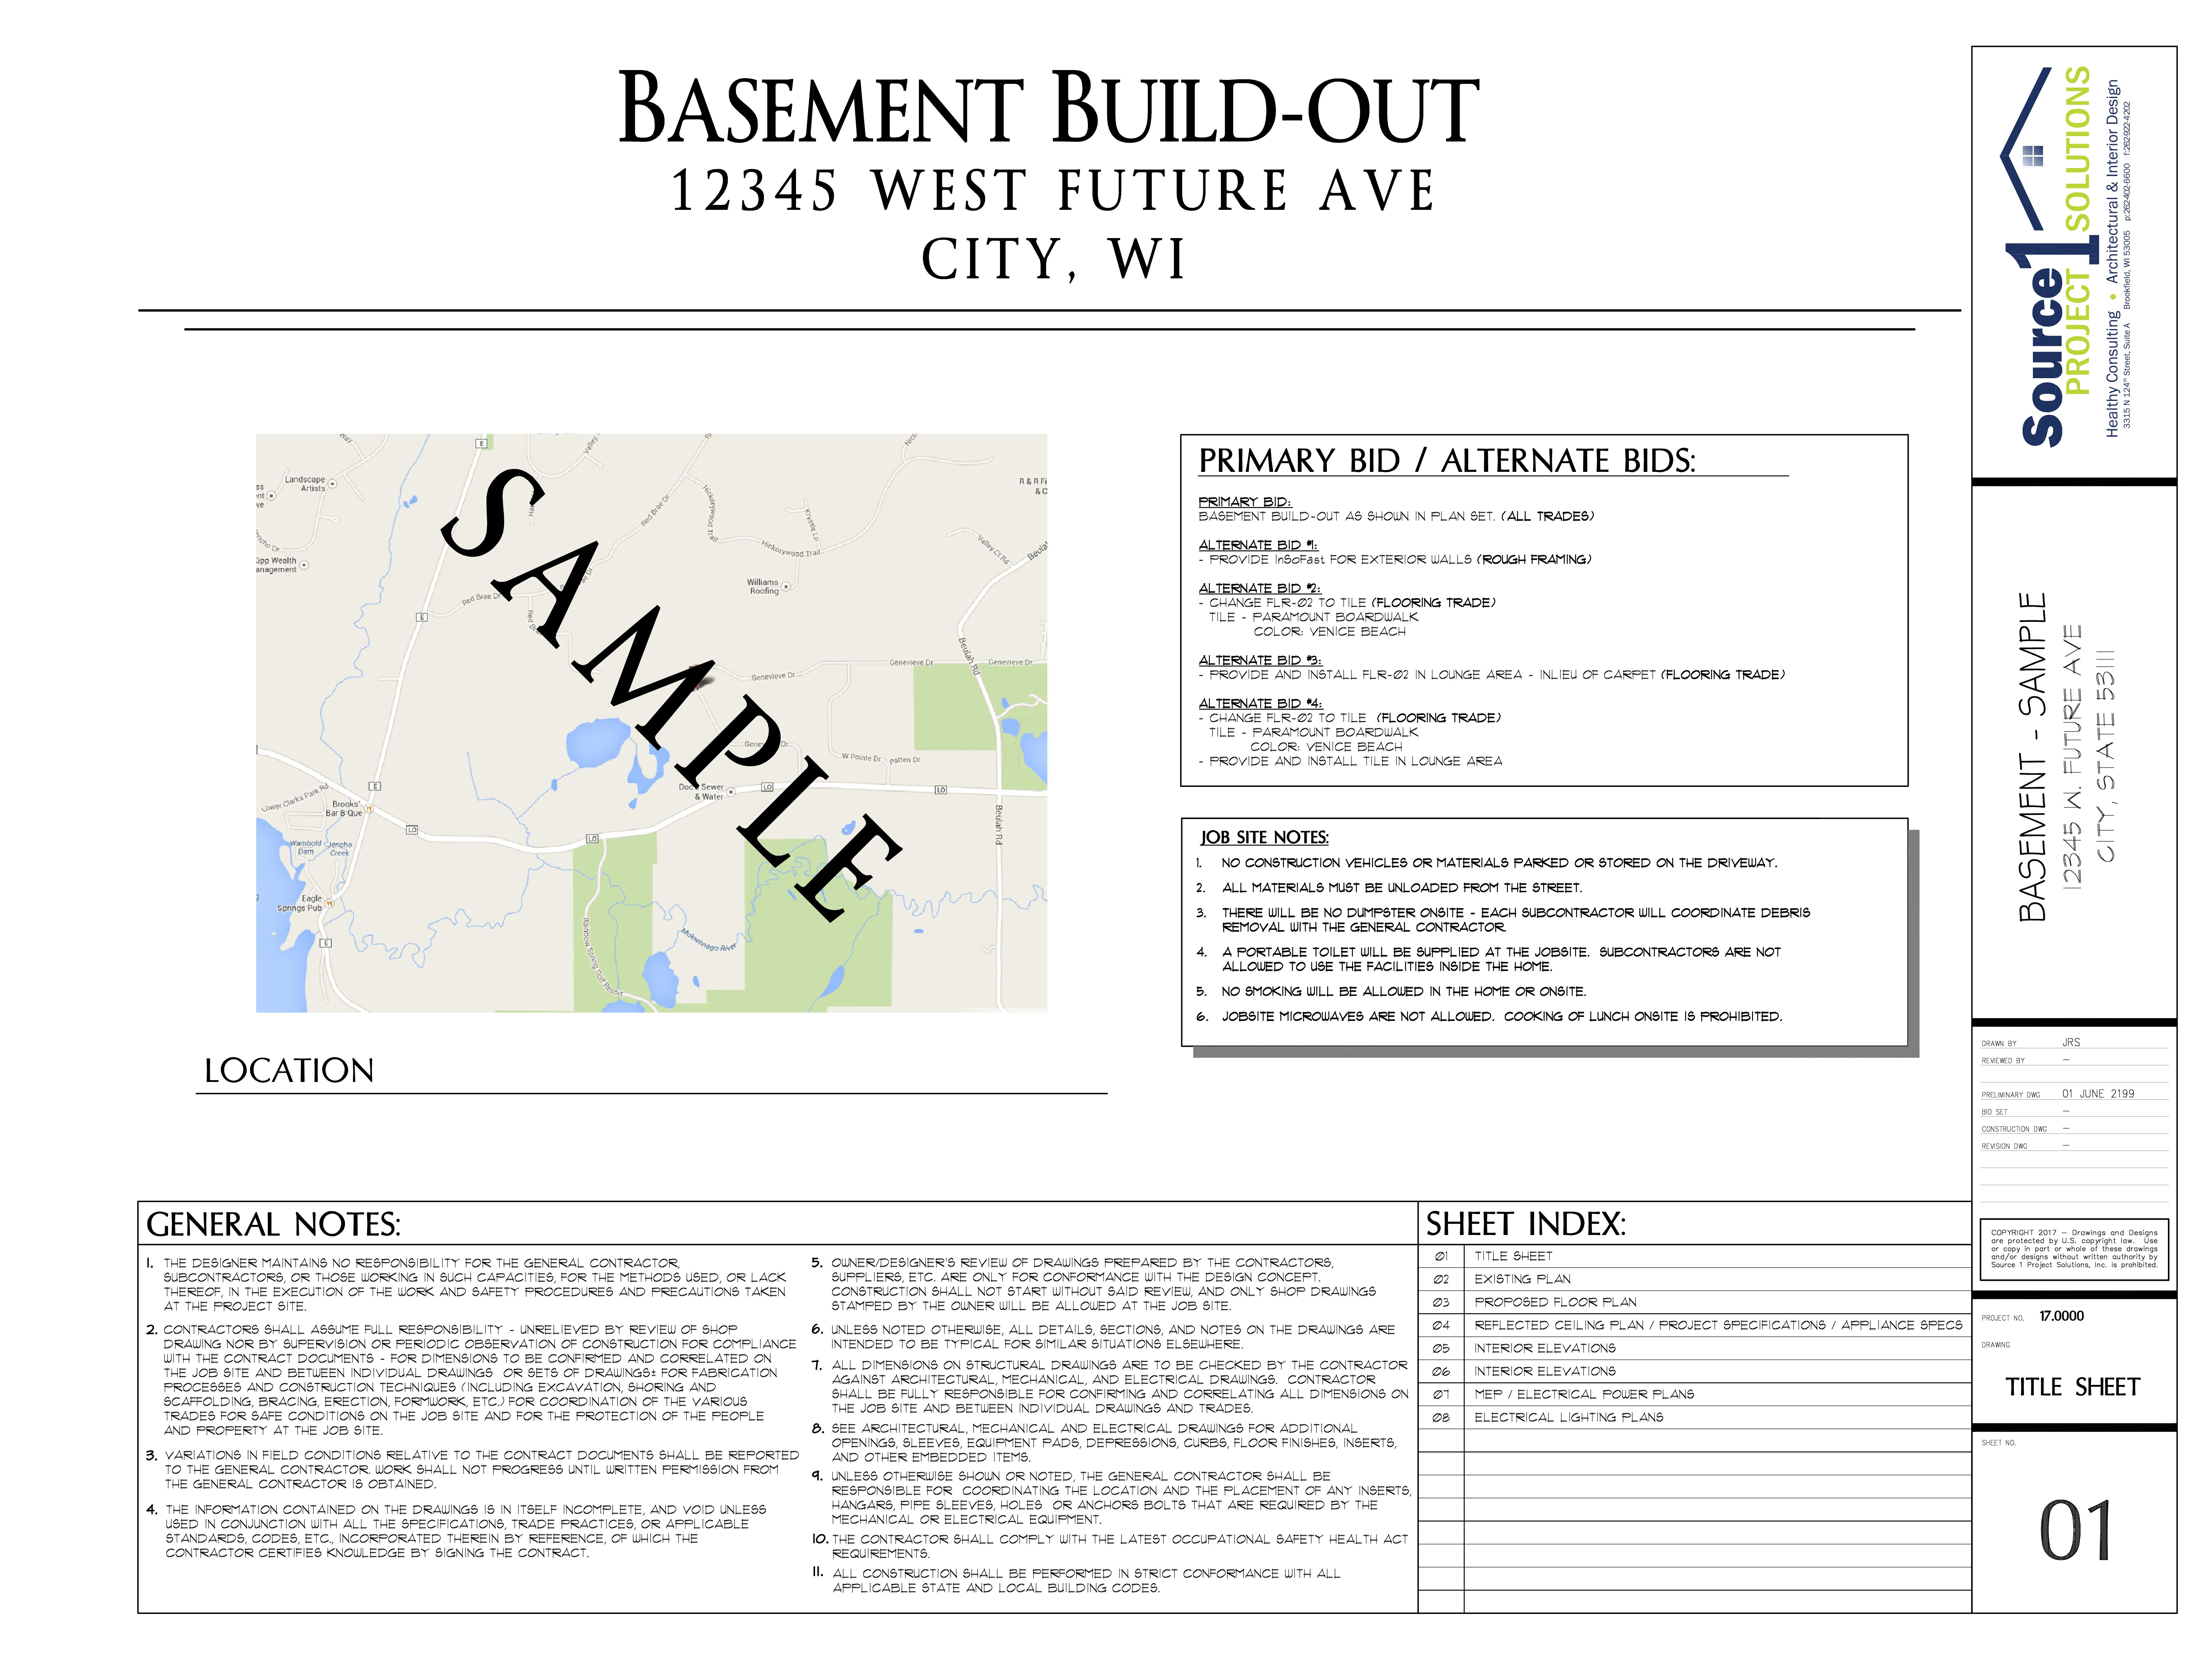 Source 1 Basement Plan - SAMPLE 01_1